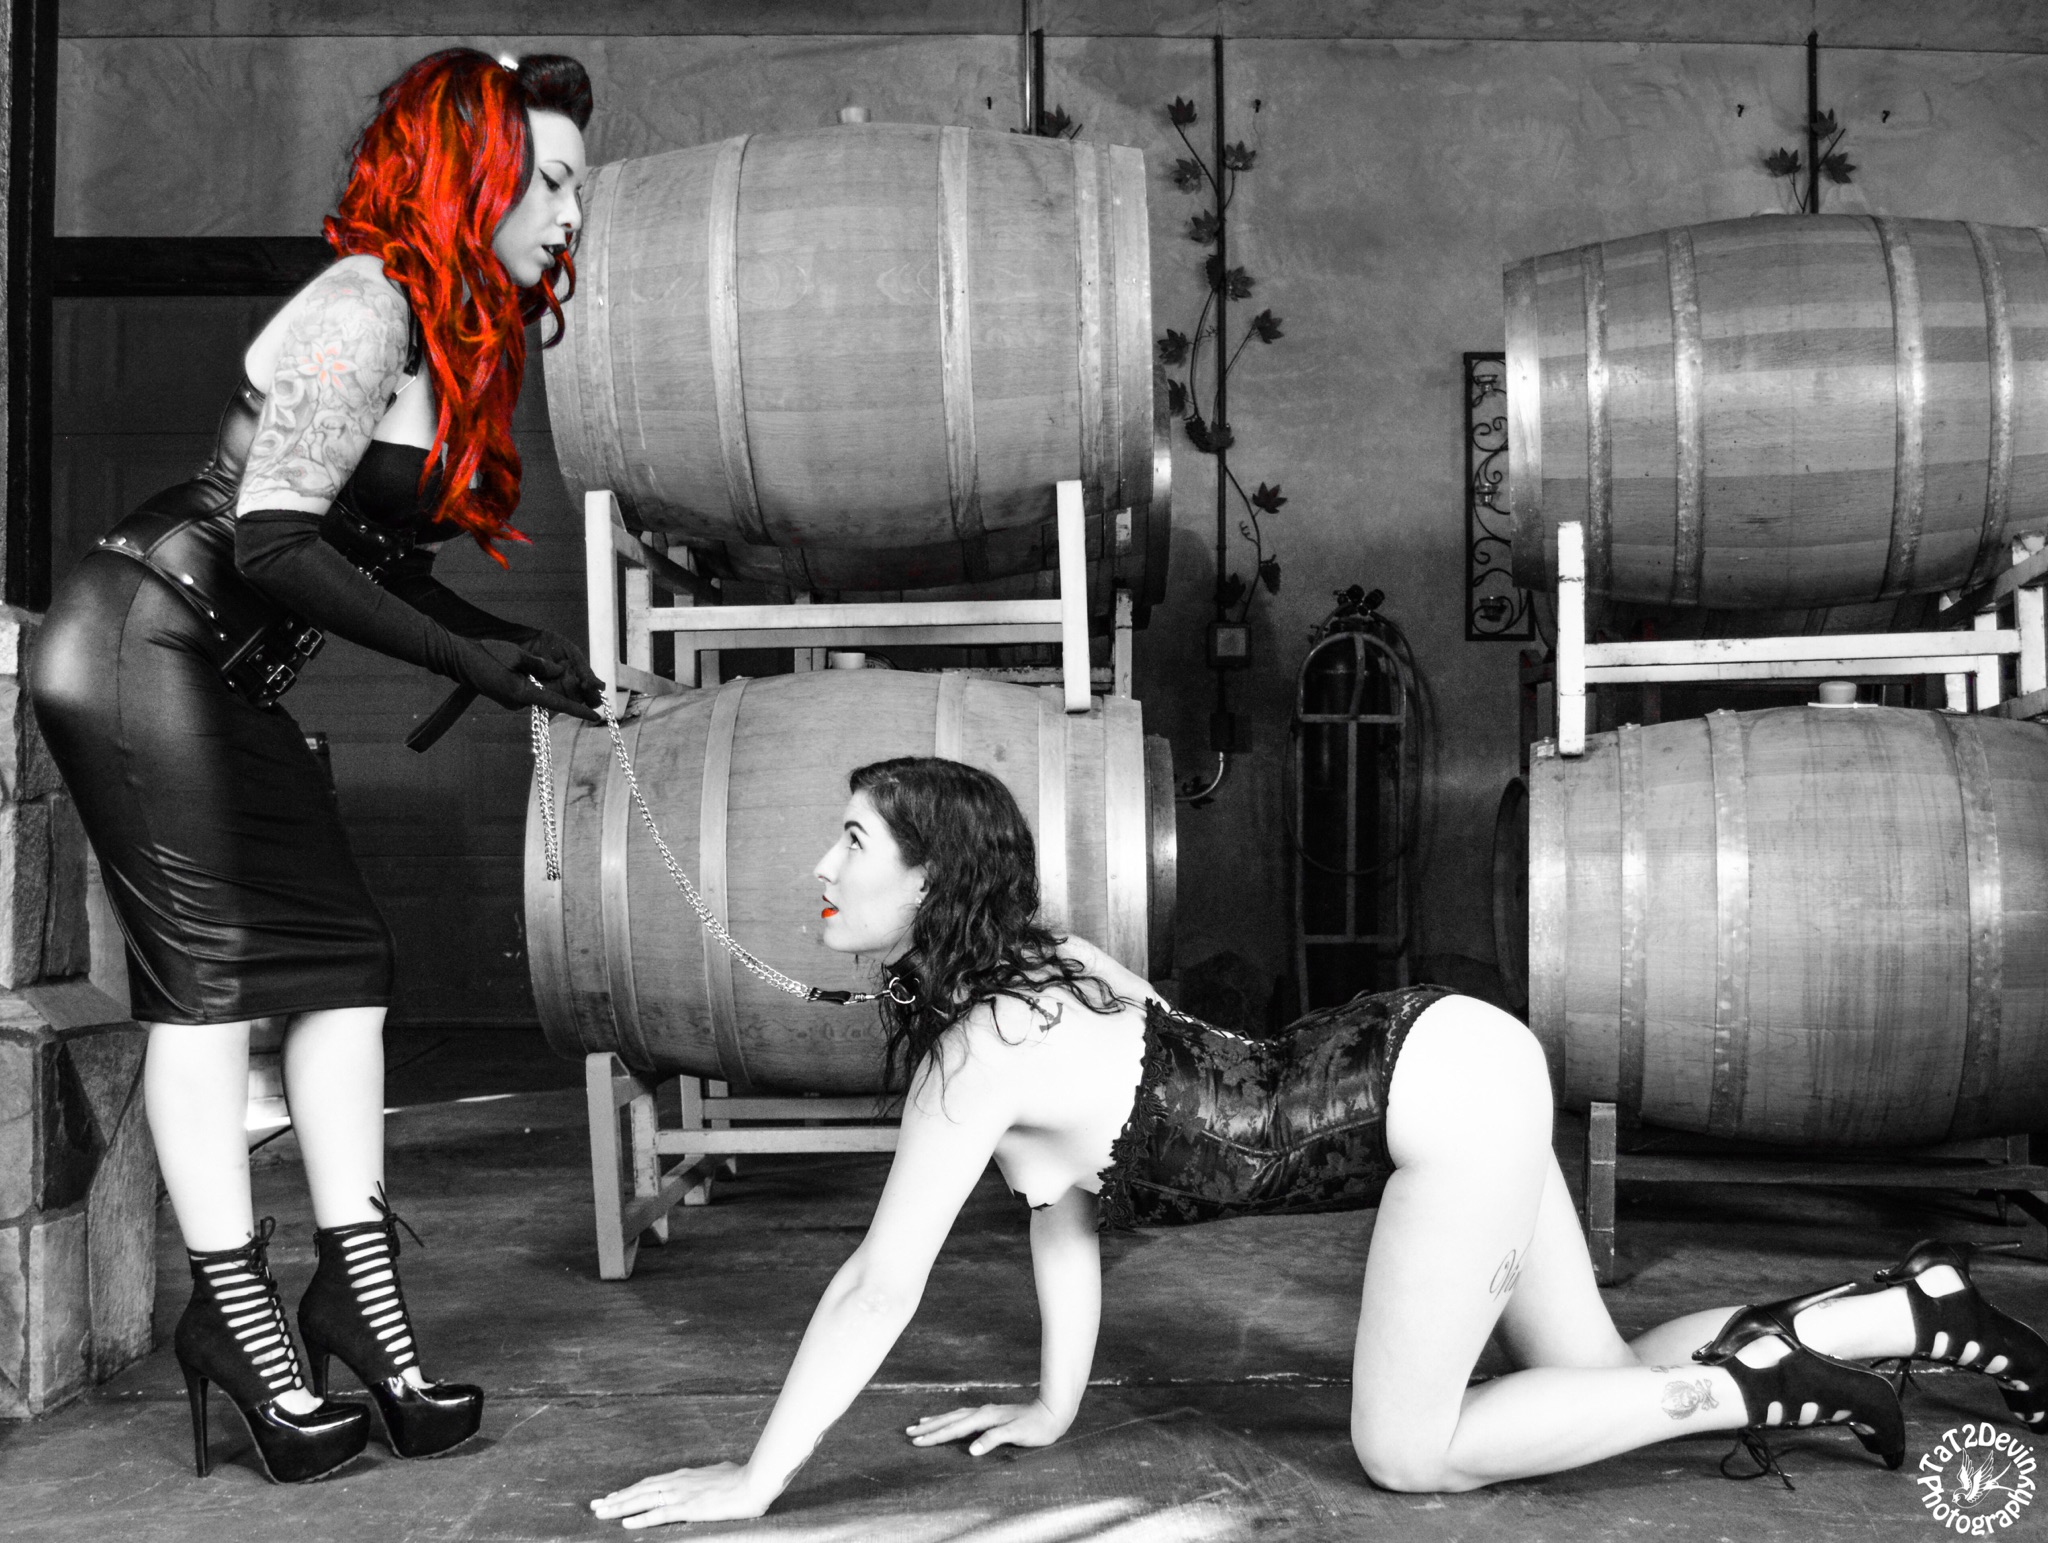 The master gives the gift of control, the slave gives the gift of submission - Models: Miss Rockabellalynne and Ambrosia_rottenPhoto by: Tat2devinphotography